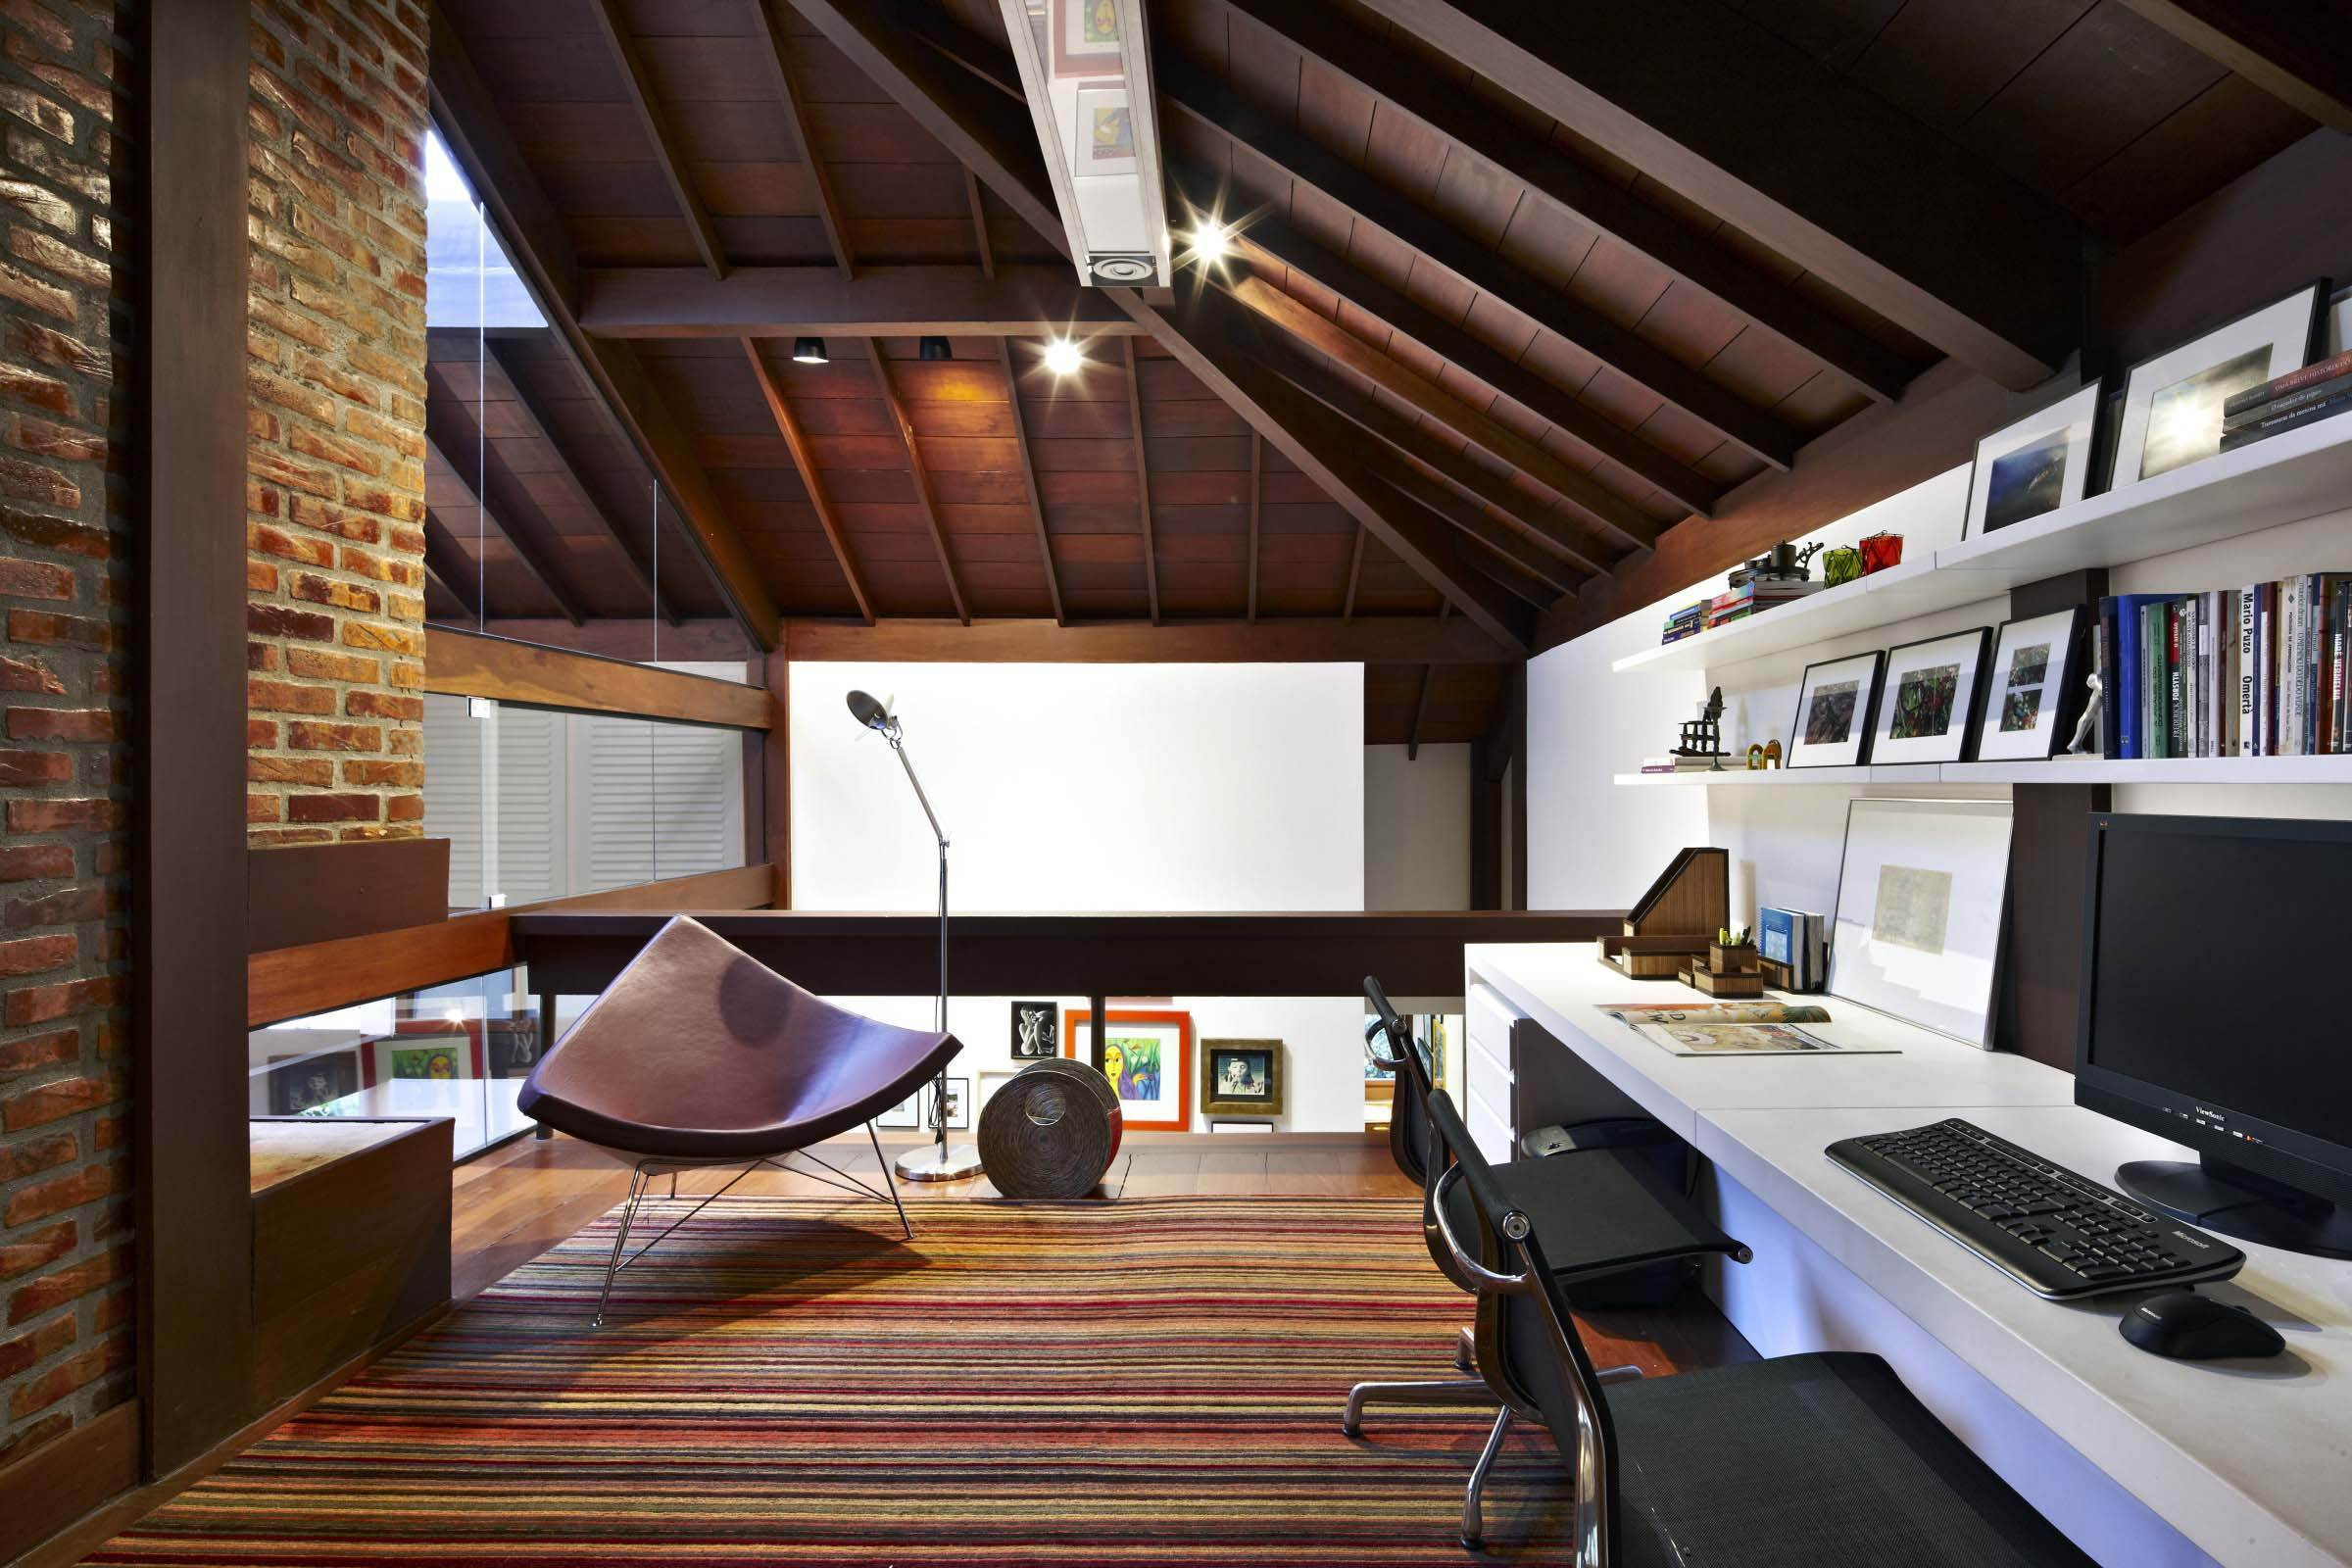 home office decorating ideas nyc. The Perfect Office - Heng Balance Lamp, Mission One Computer And Ideas Home Decorating Nyc A